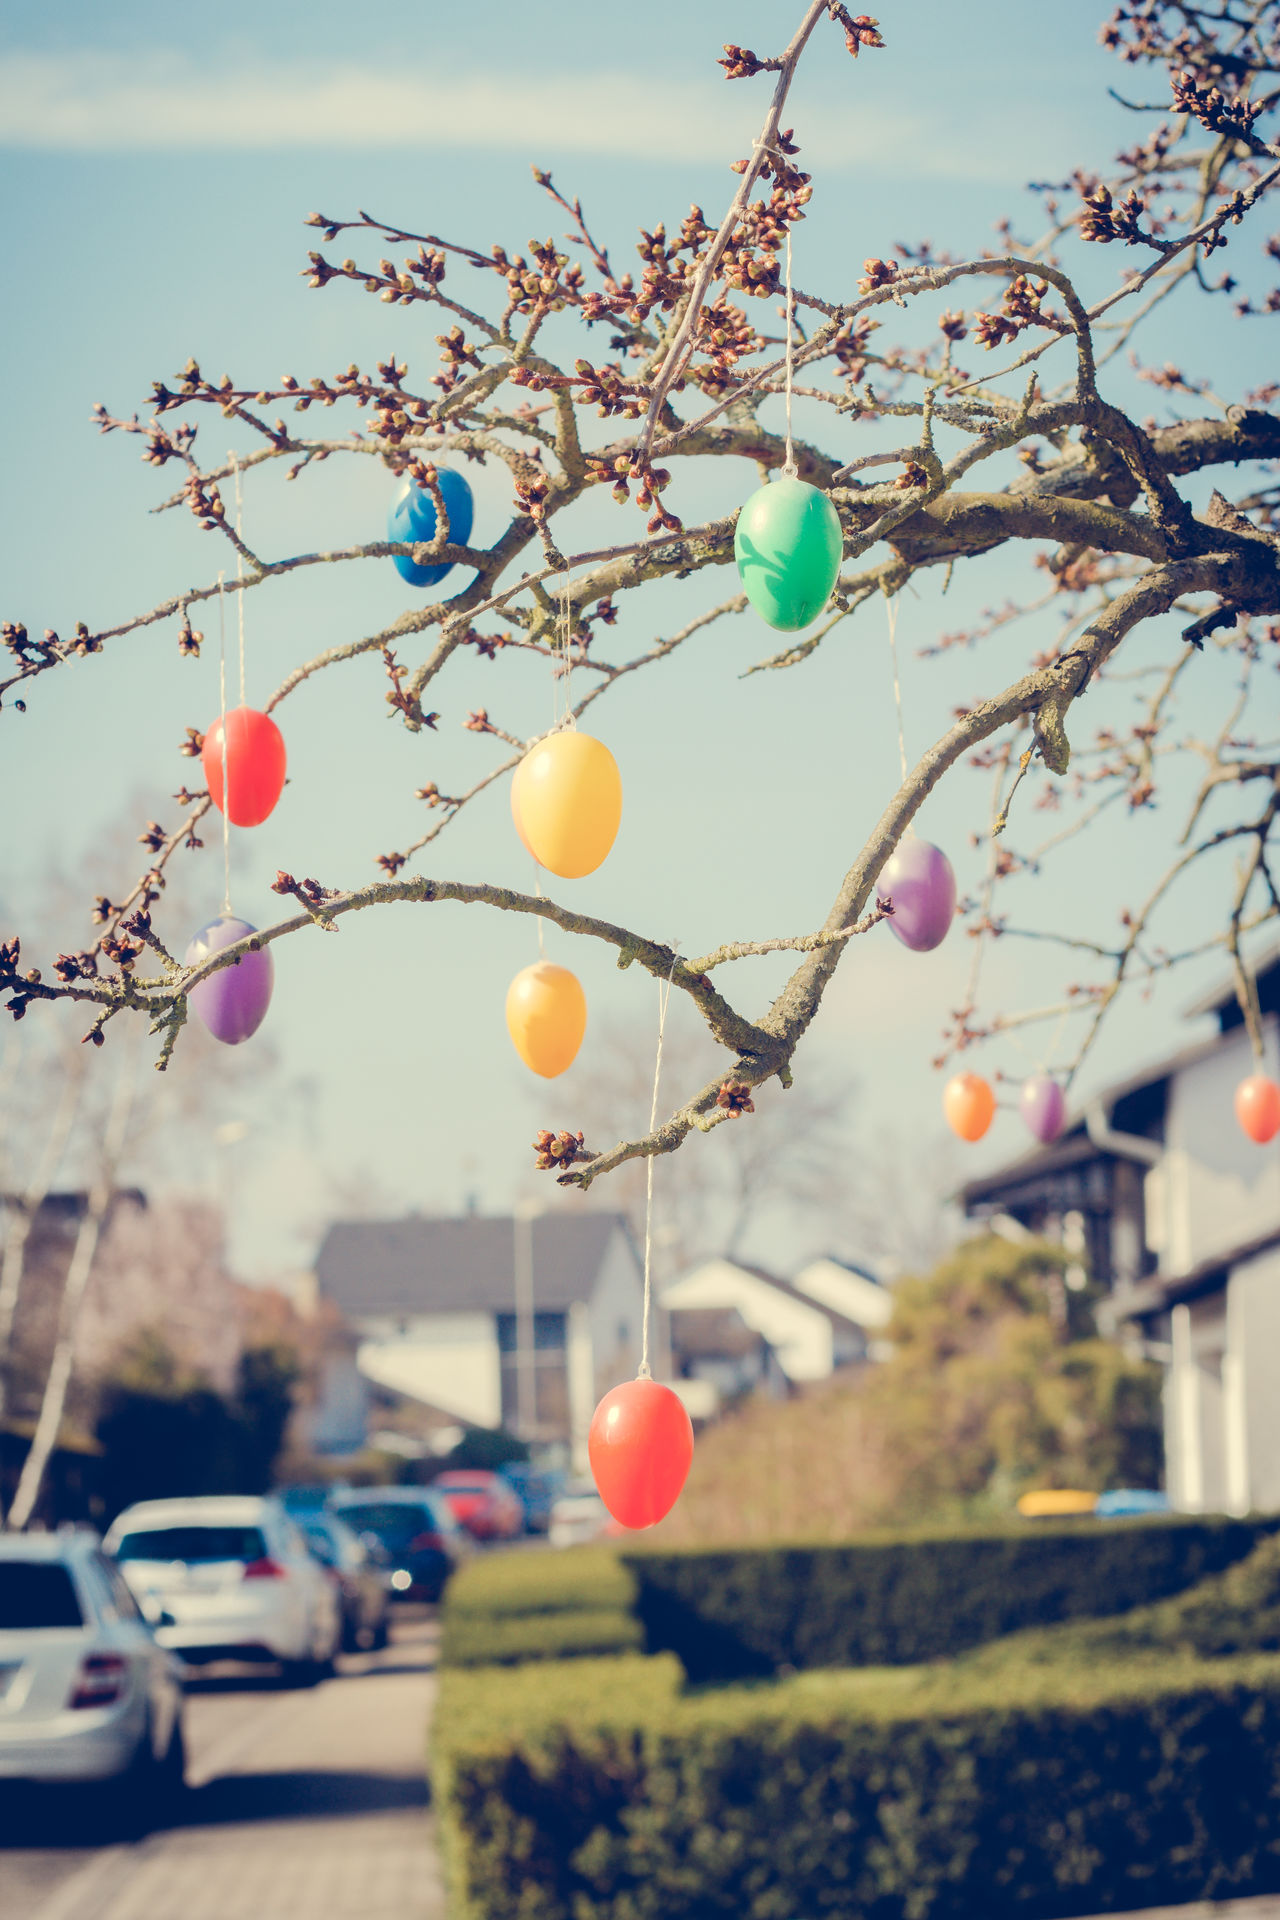 Ostern Balloon Be Happy Celebration Christmas Ornament Close-up Colors Day Easter Eggs Feast Hanging I Love Easter No People Ostern Outdoors Sky Springtime Tree Tree